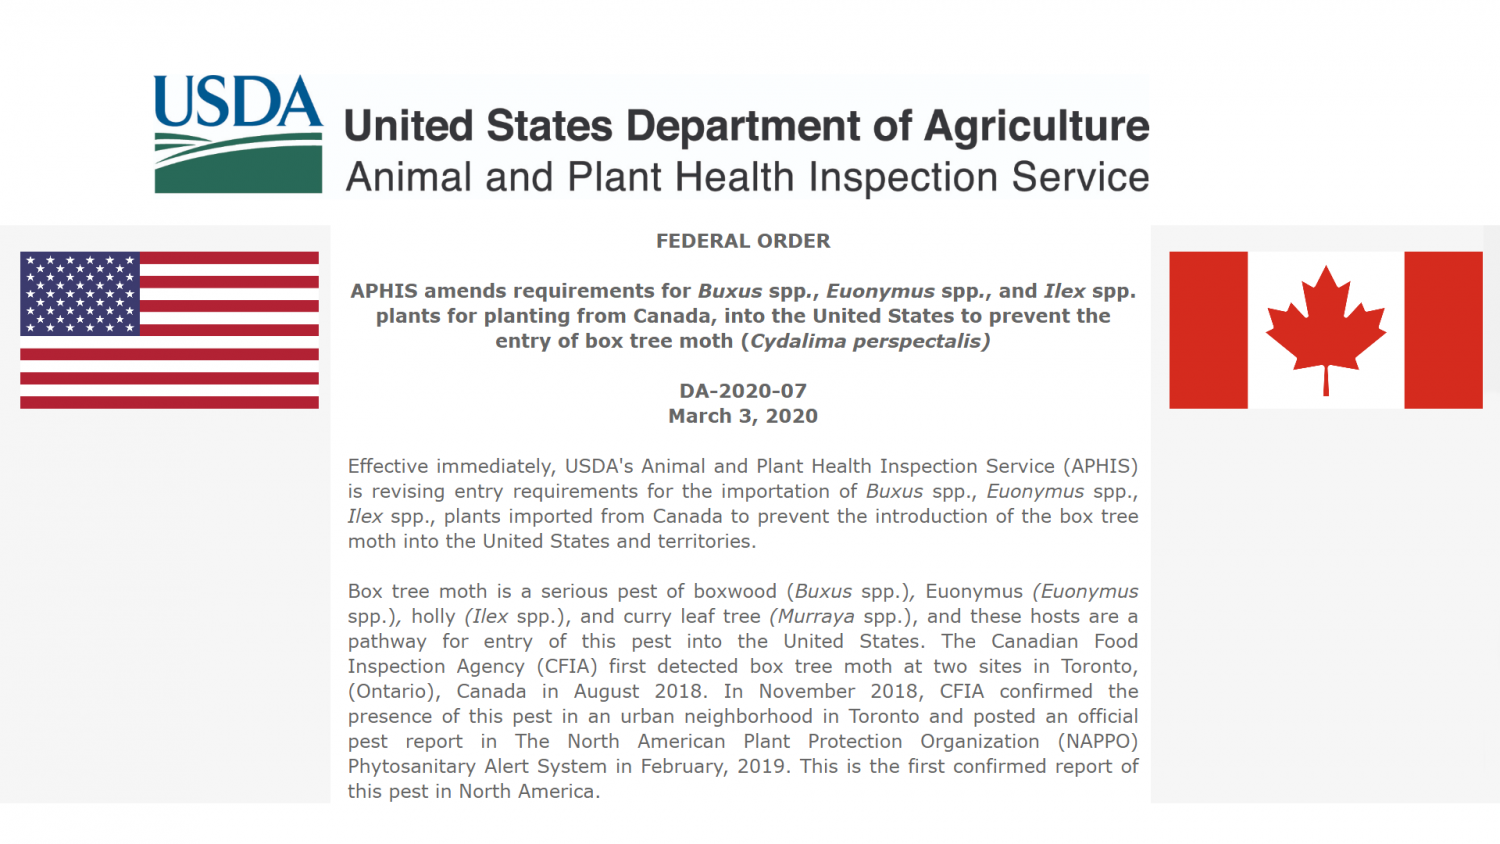 USDA APHIS Announcement HL